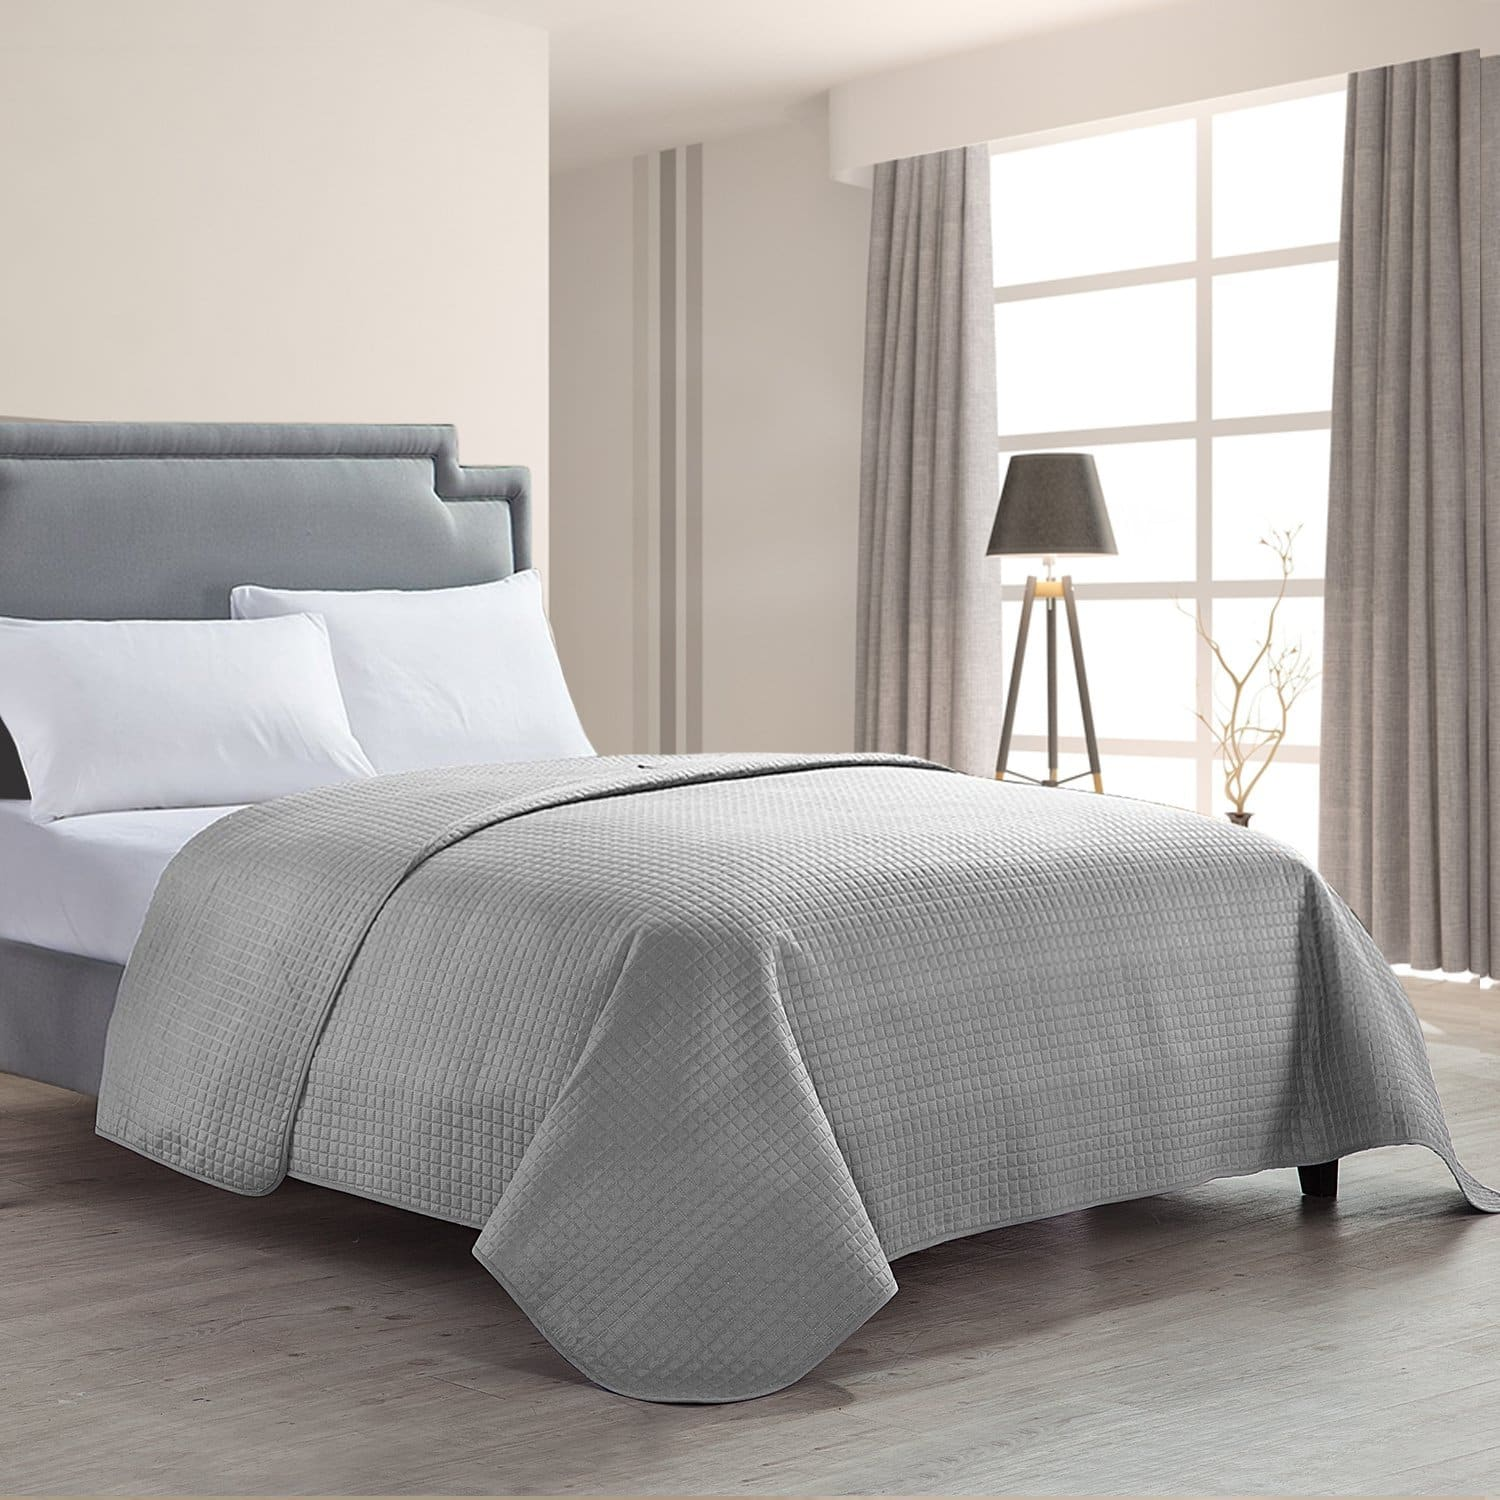 Luxury Checkered Pinsonic Quilted Bed Quilt Bedspread - King Size *50% OFF* (Free Prime Shipping) $13.49